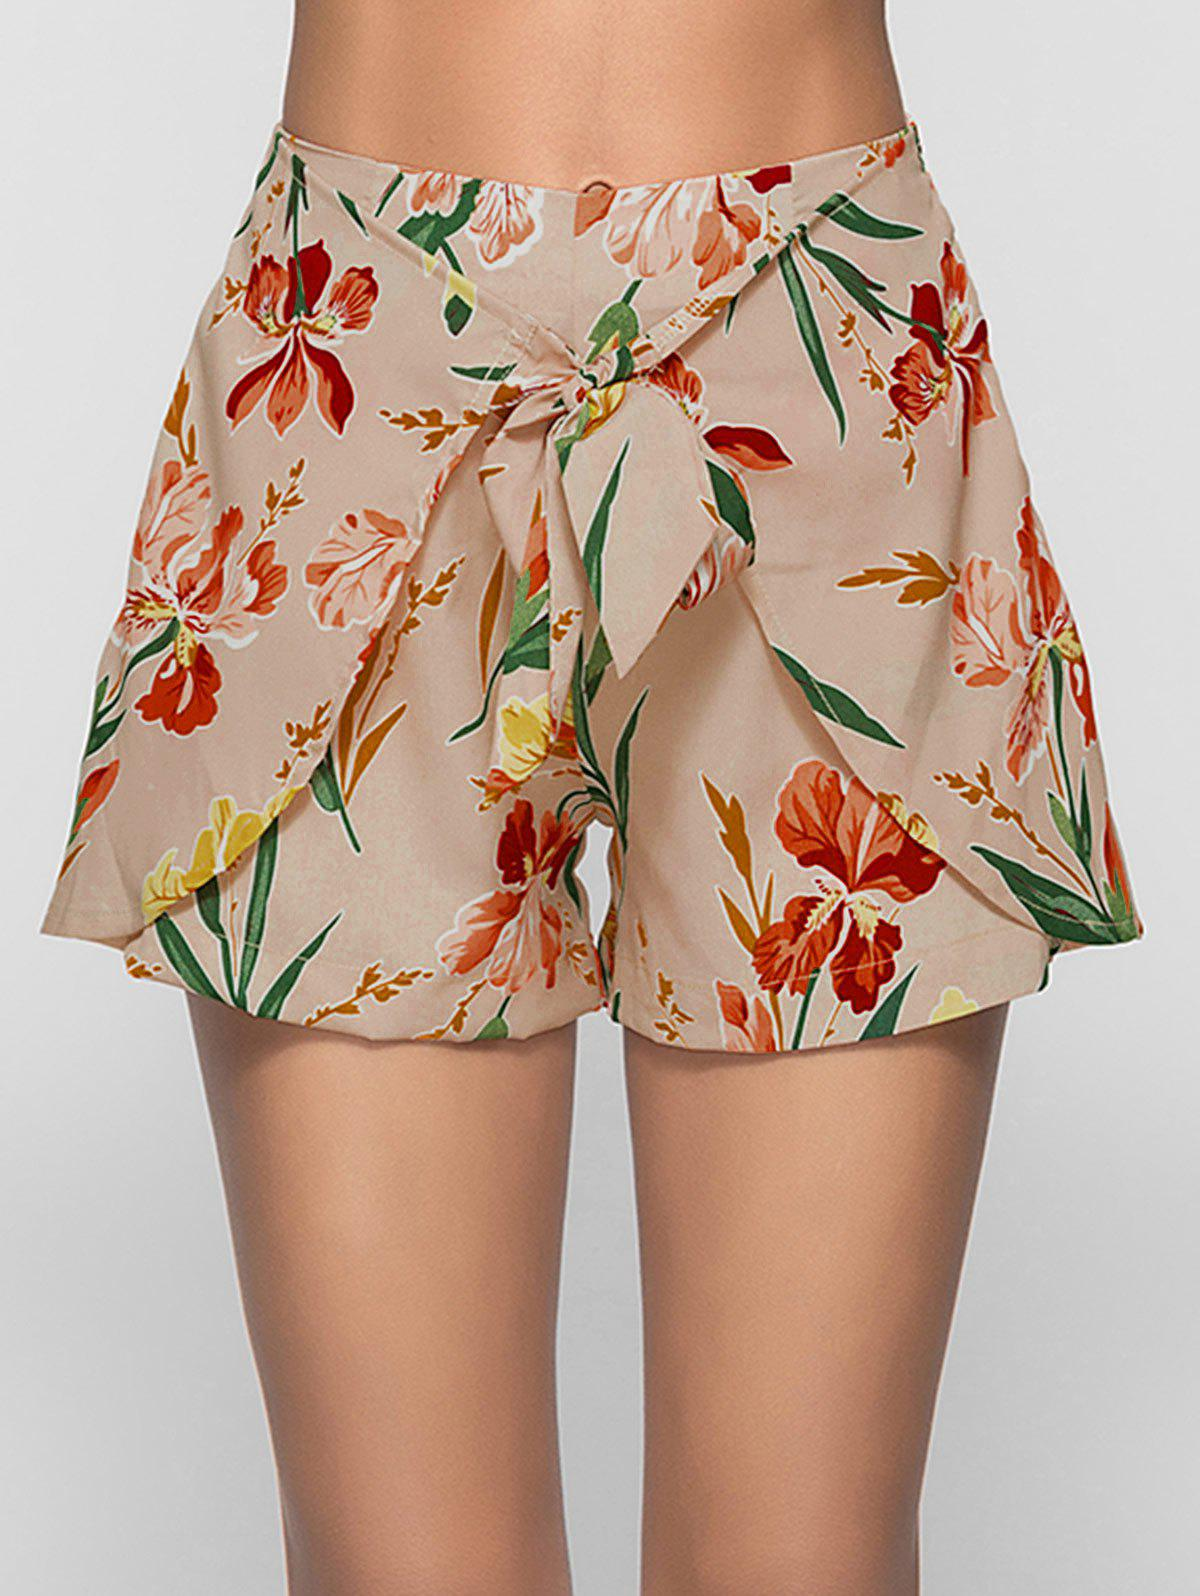 New Floral Print Self Tie Shorts